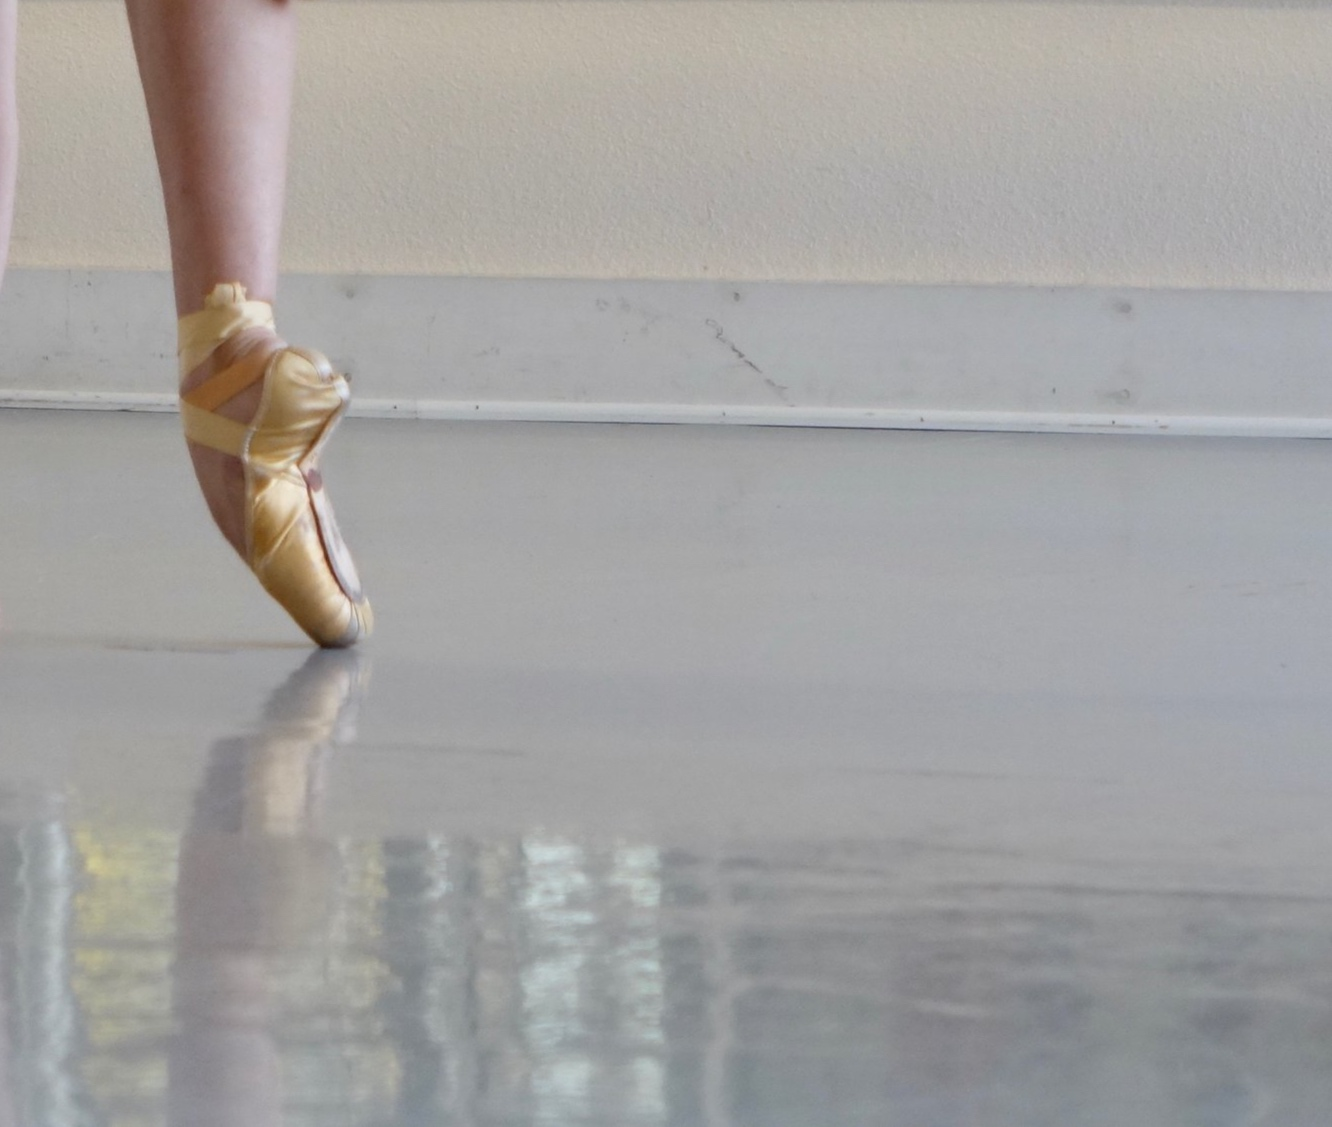 $50 - Signed Pointe Shoes - For a donation of $50 you will receive a signed pair of pointe shoes from one of the PDX Contemporary Ballet dancers!Availability: While they last!